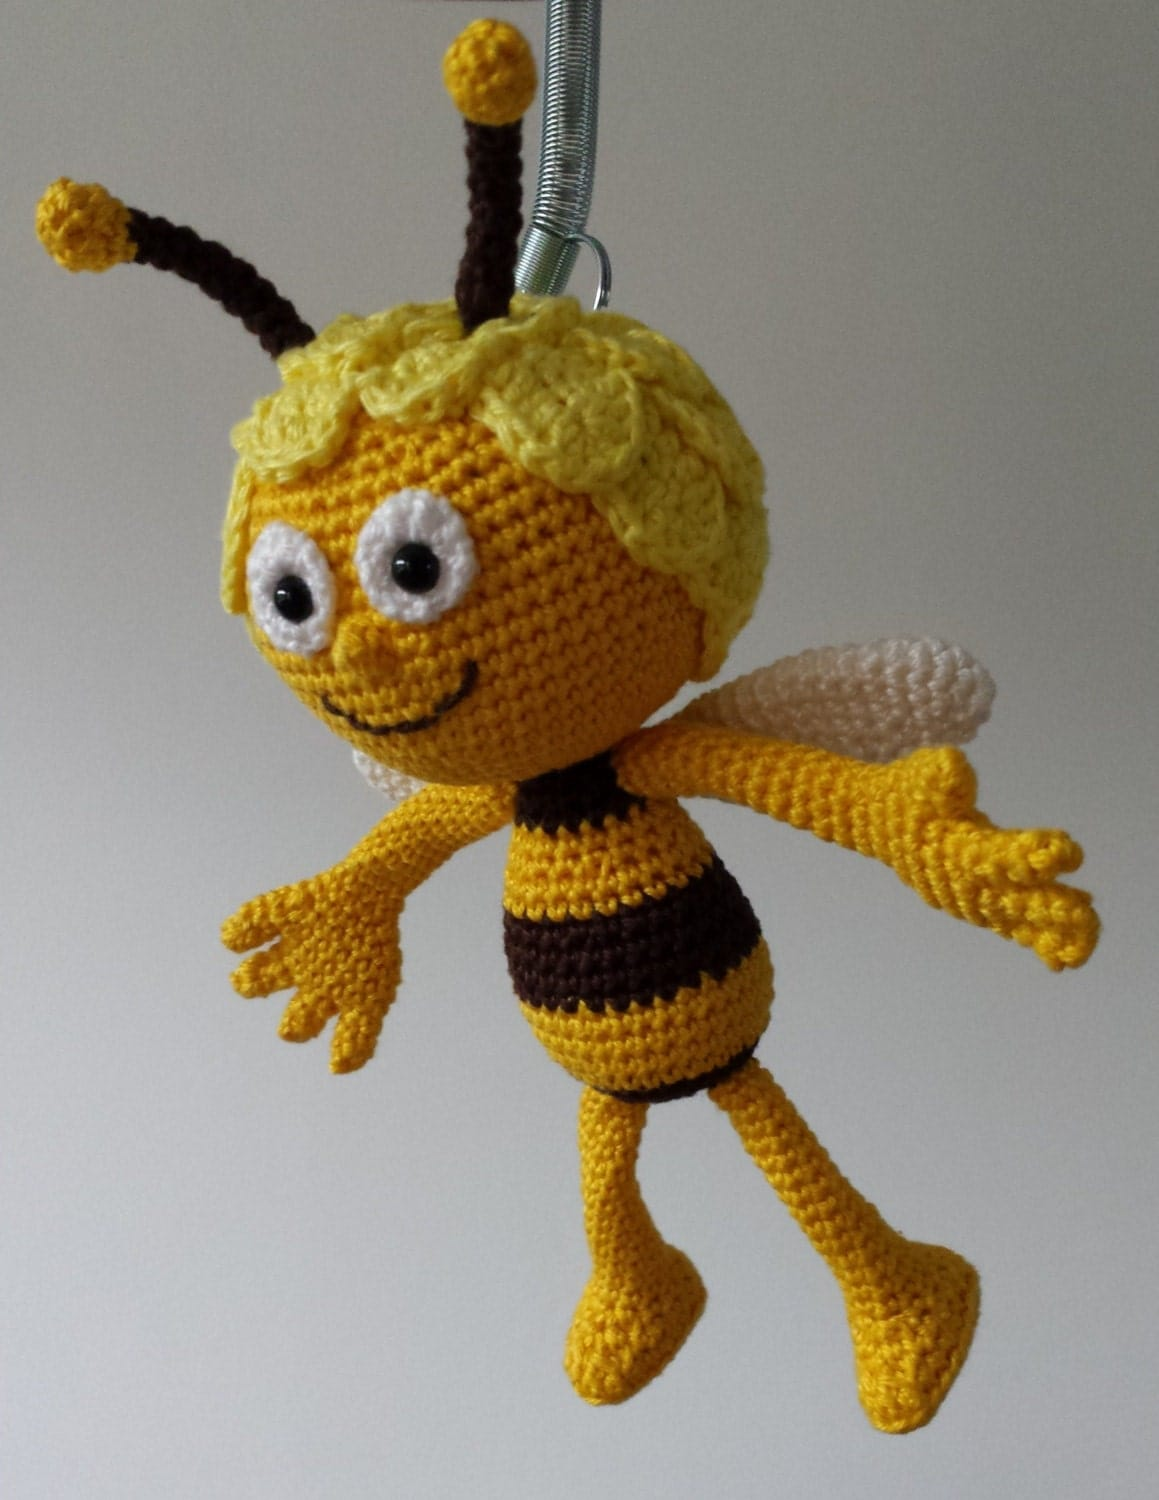 Amigurumi Basic Doll Pattern : Maya and Willy the Bee crochet pattern Dutch-English from ...